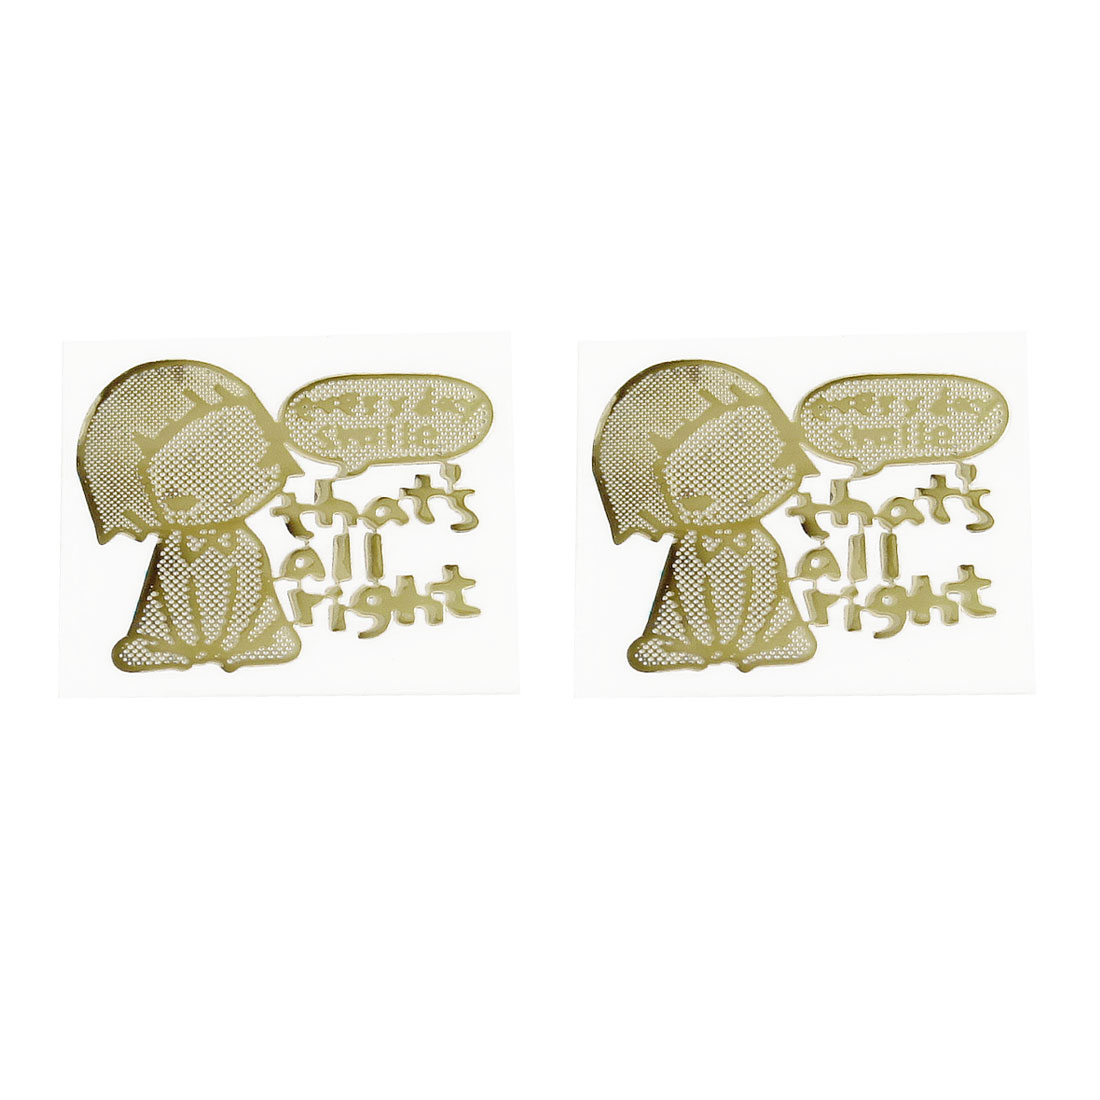 2 x Gold Plating Girl Sitting Stickers for LCD Monitor